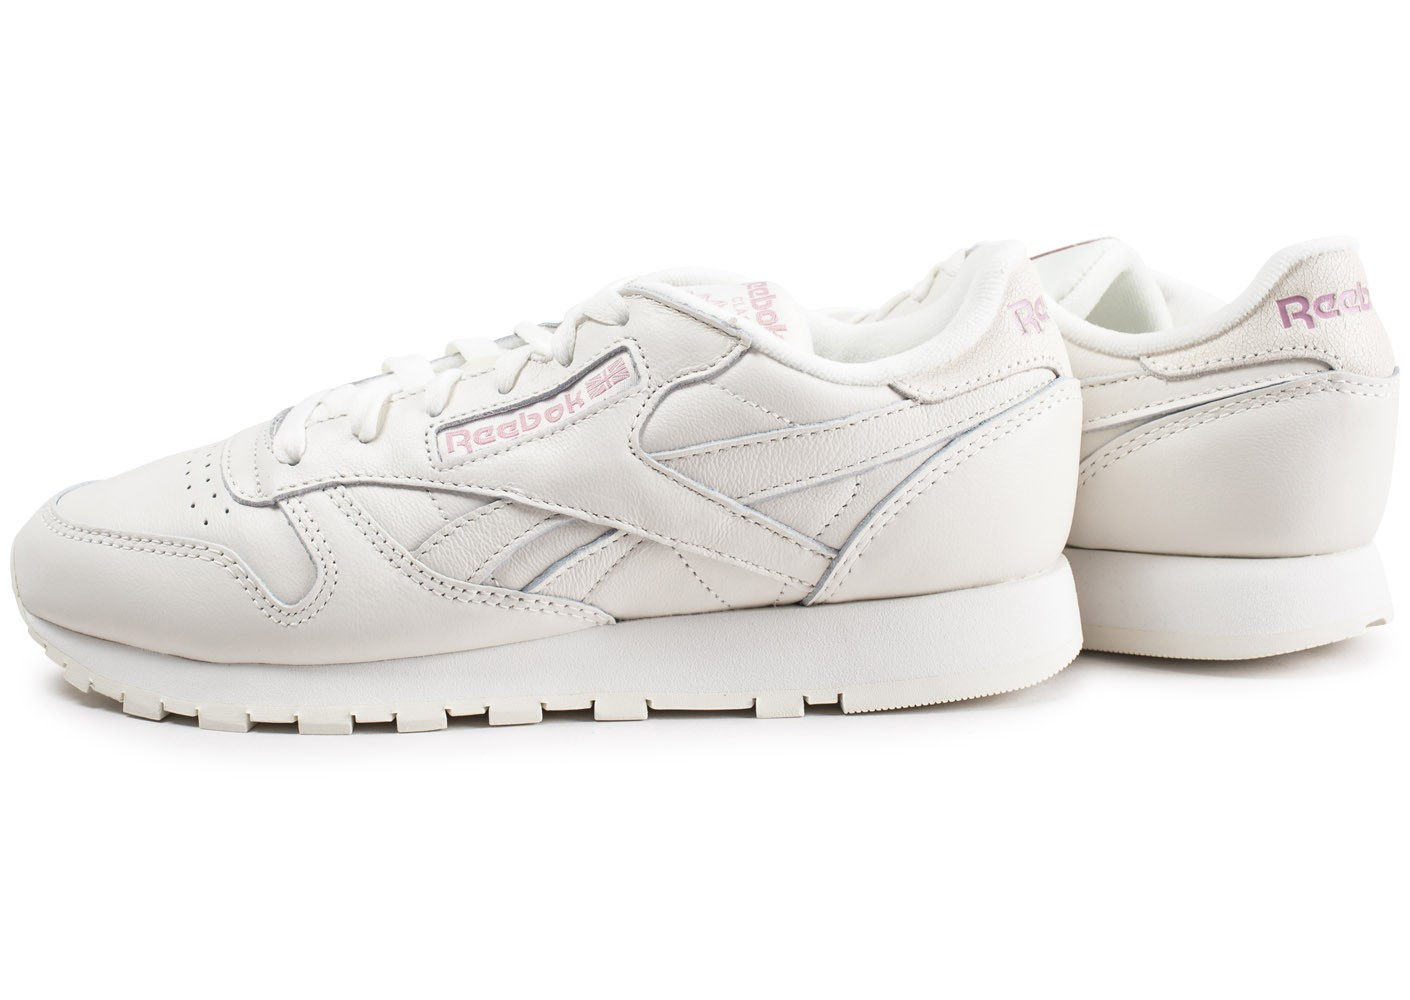 reebok chaussures femmes classic leather blanche XlOPiuwZkT